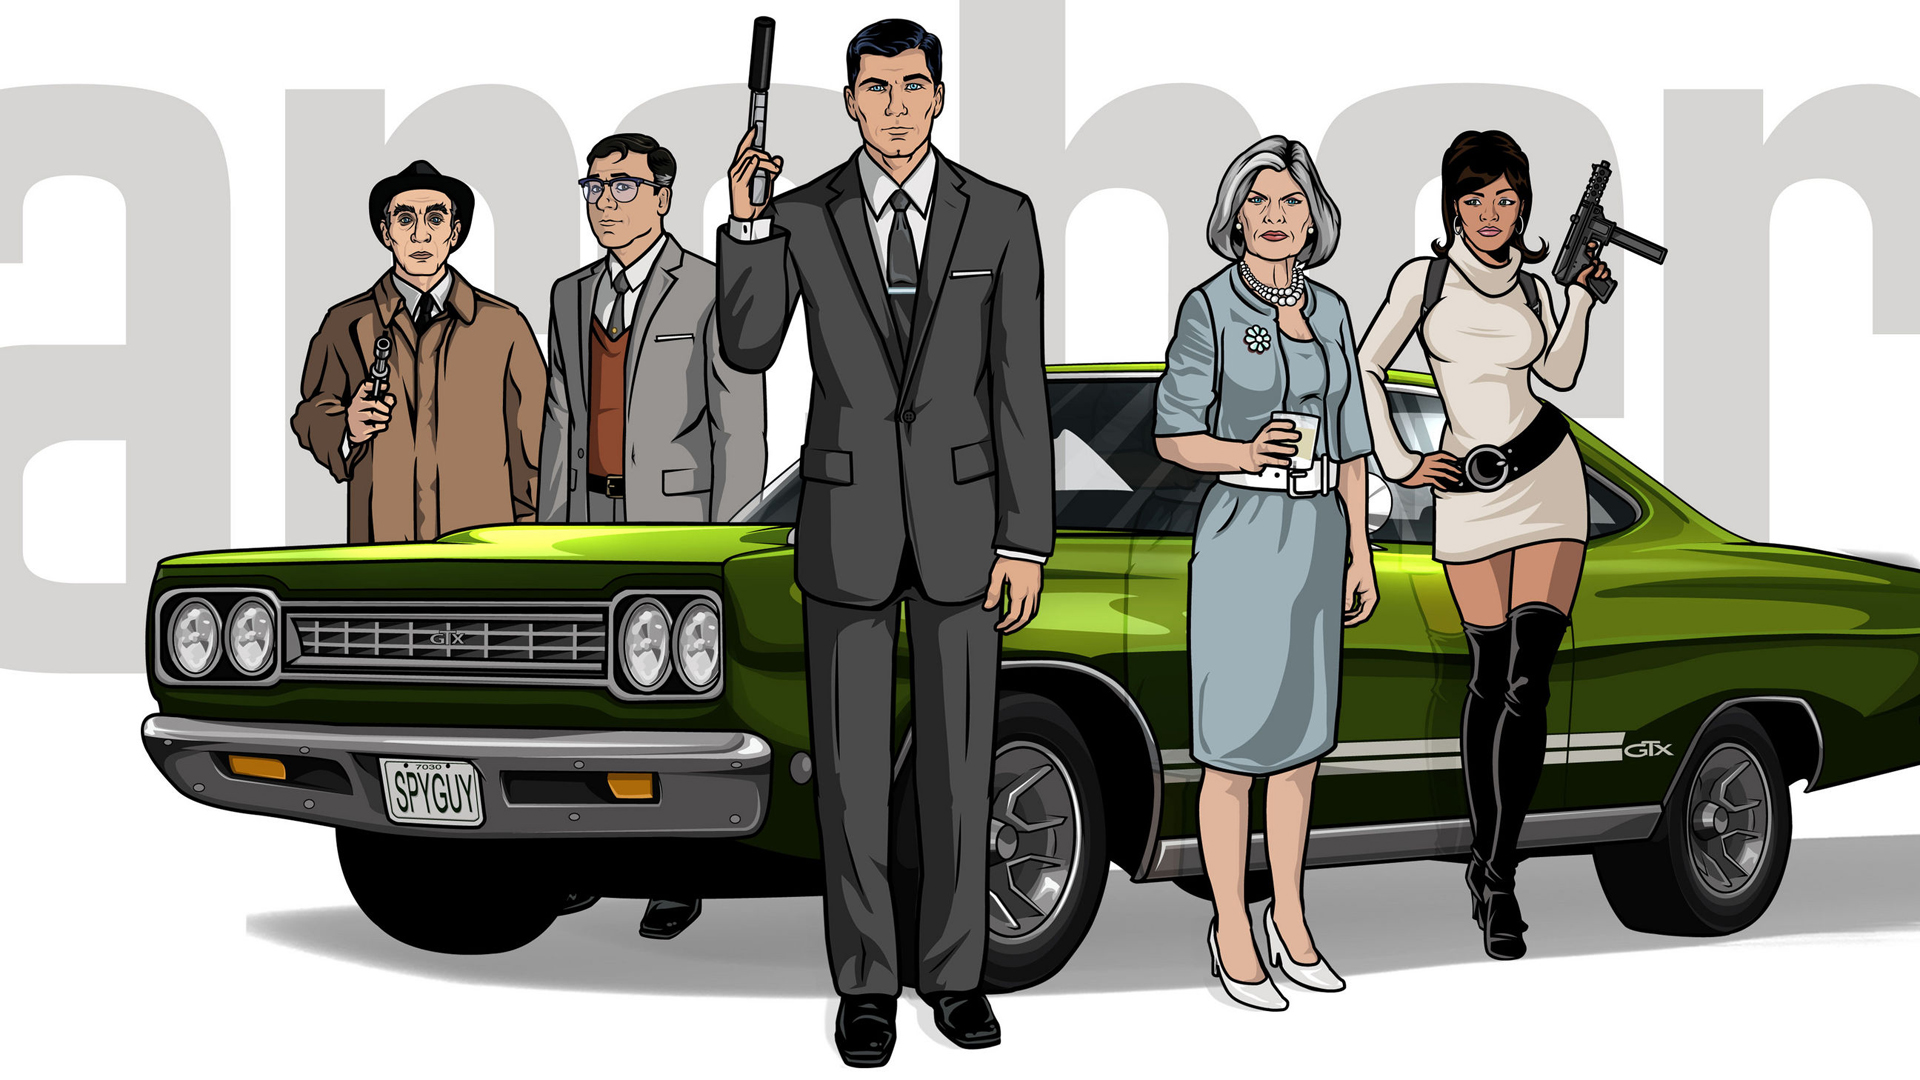 ARCHER: Archer, a new half-hour animated comedy series airing on FX